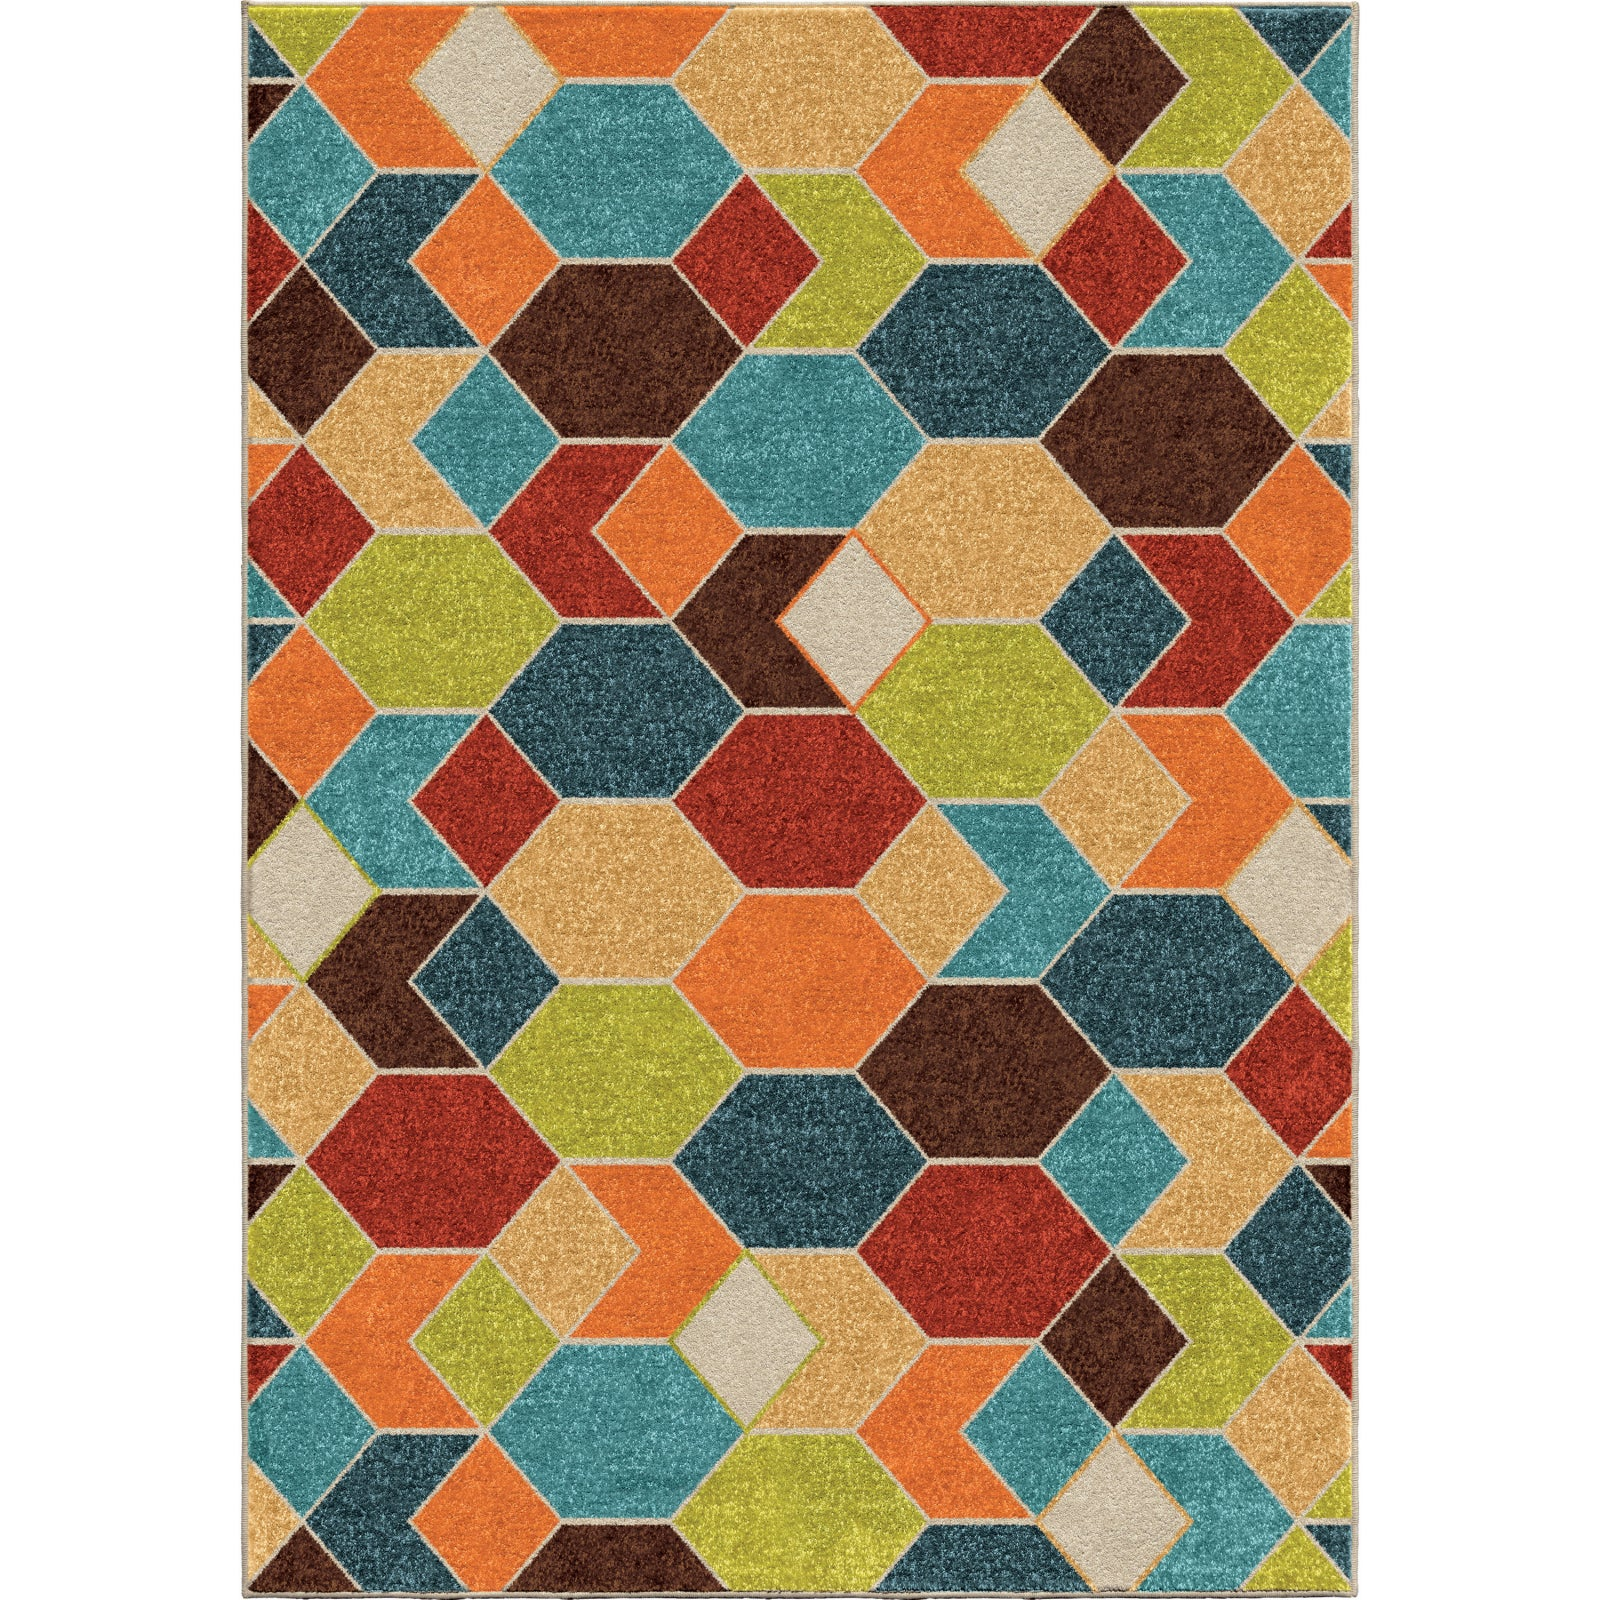 Orian Rugs Promise Spectacle Multi Area Rug main image